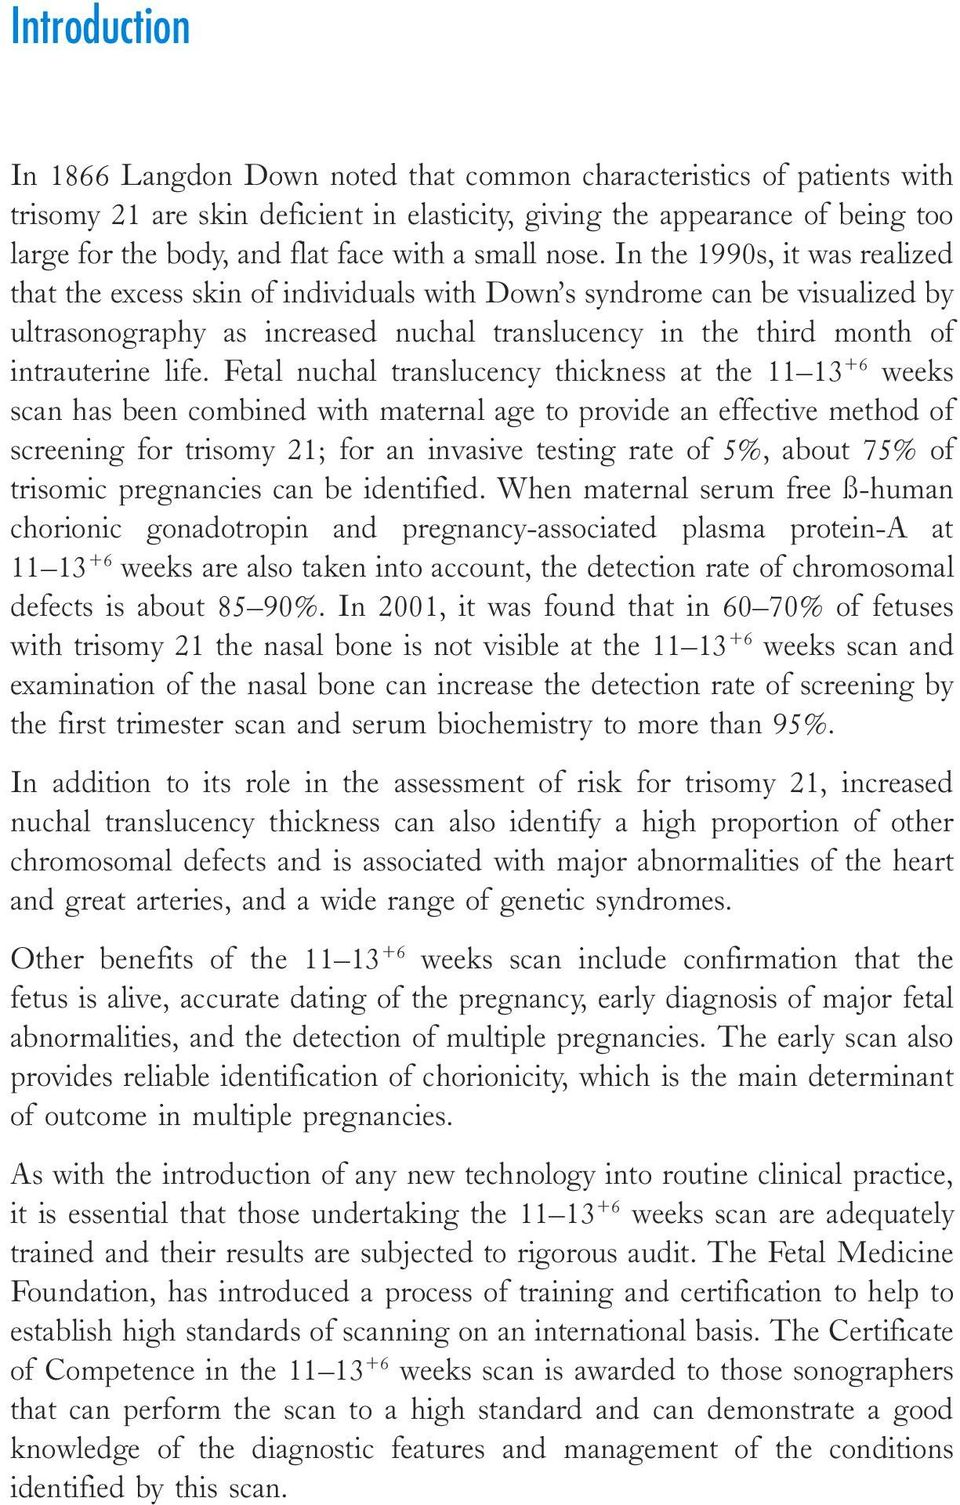 In the 1990s, it was realized that the excess skin of individuals with Down s syndrome can be visualized by ultrasonography as increased nuchal translucency in the third month of intrauterine life.